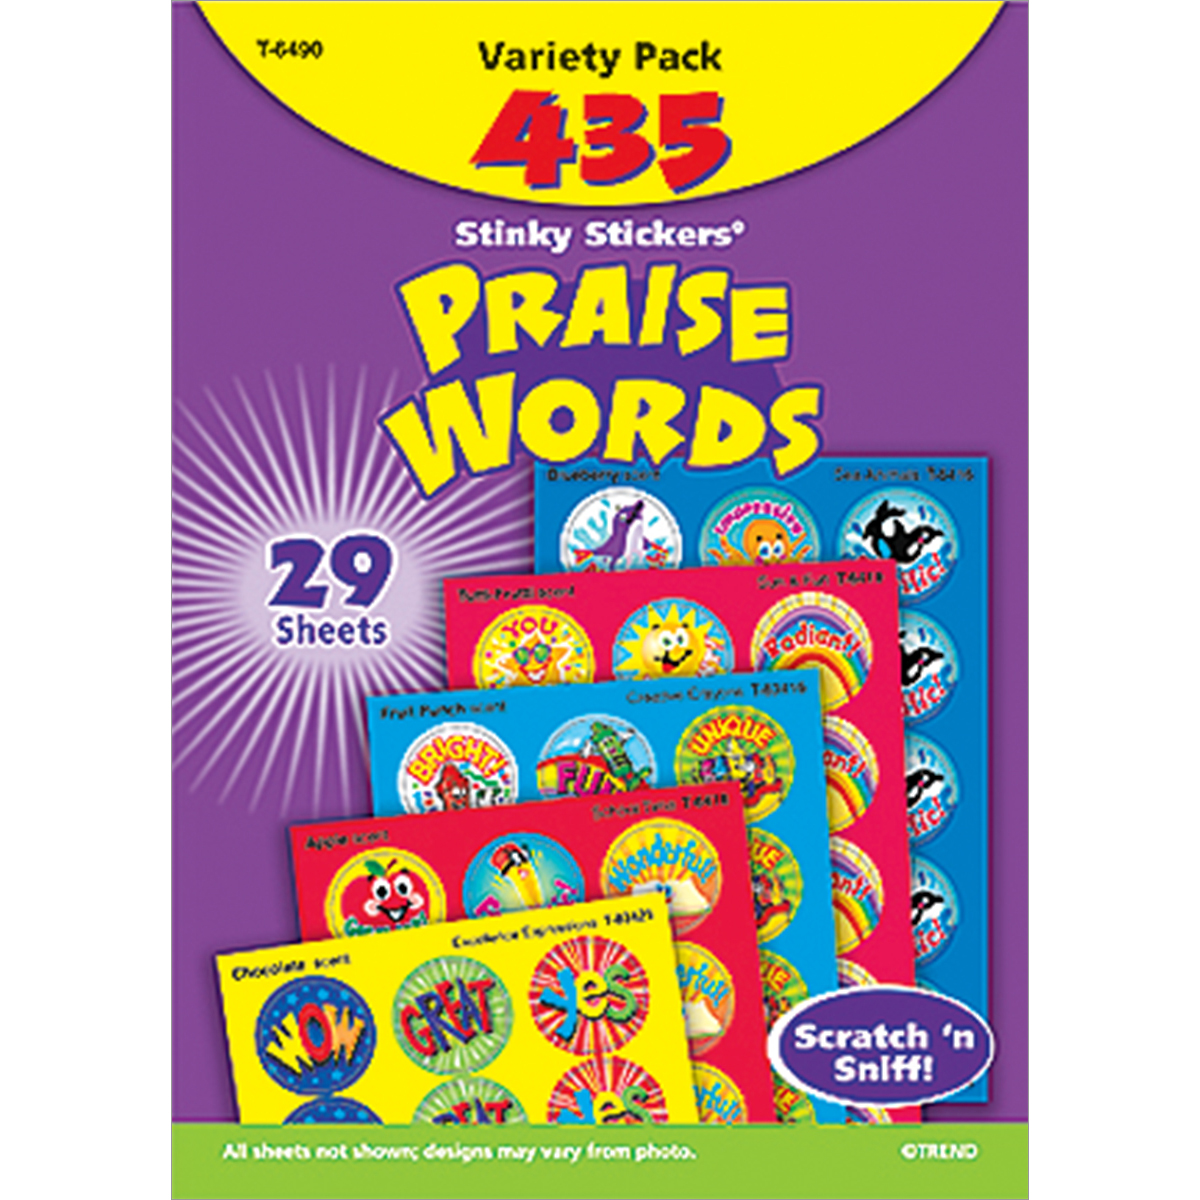 Praise Words Stinky Stickers Variety Pack